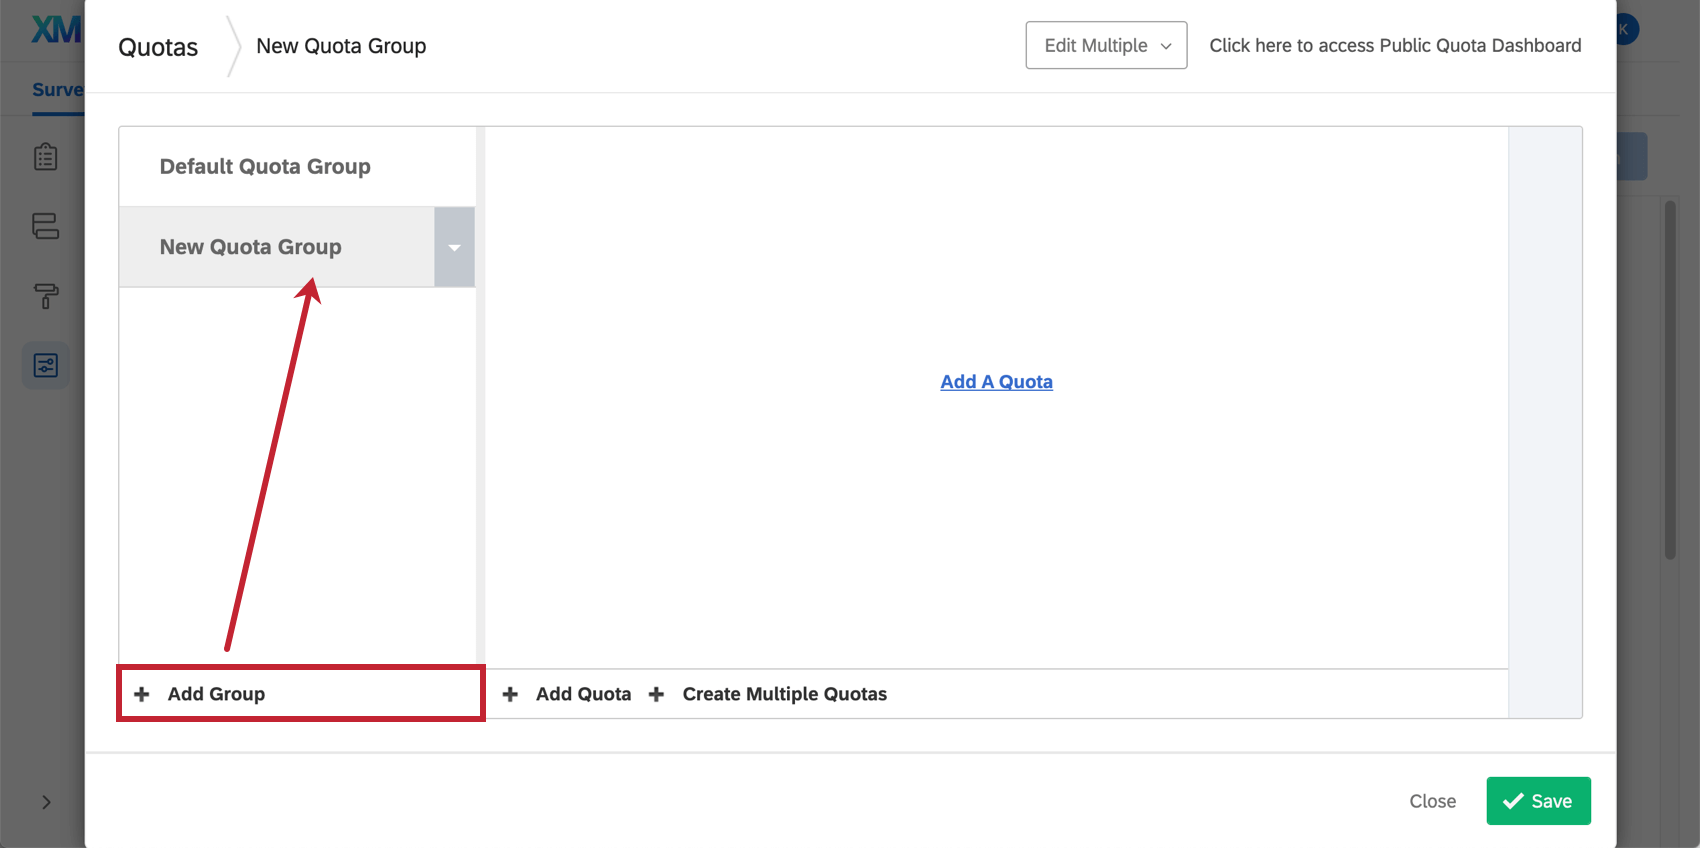 Along the leftmost menu, the Add Group option creates a new quota group